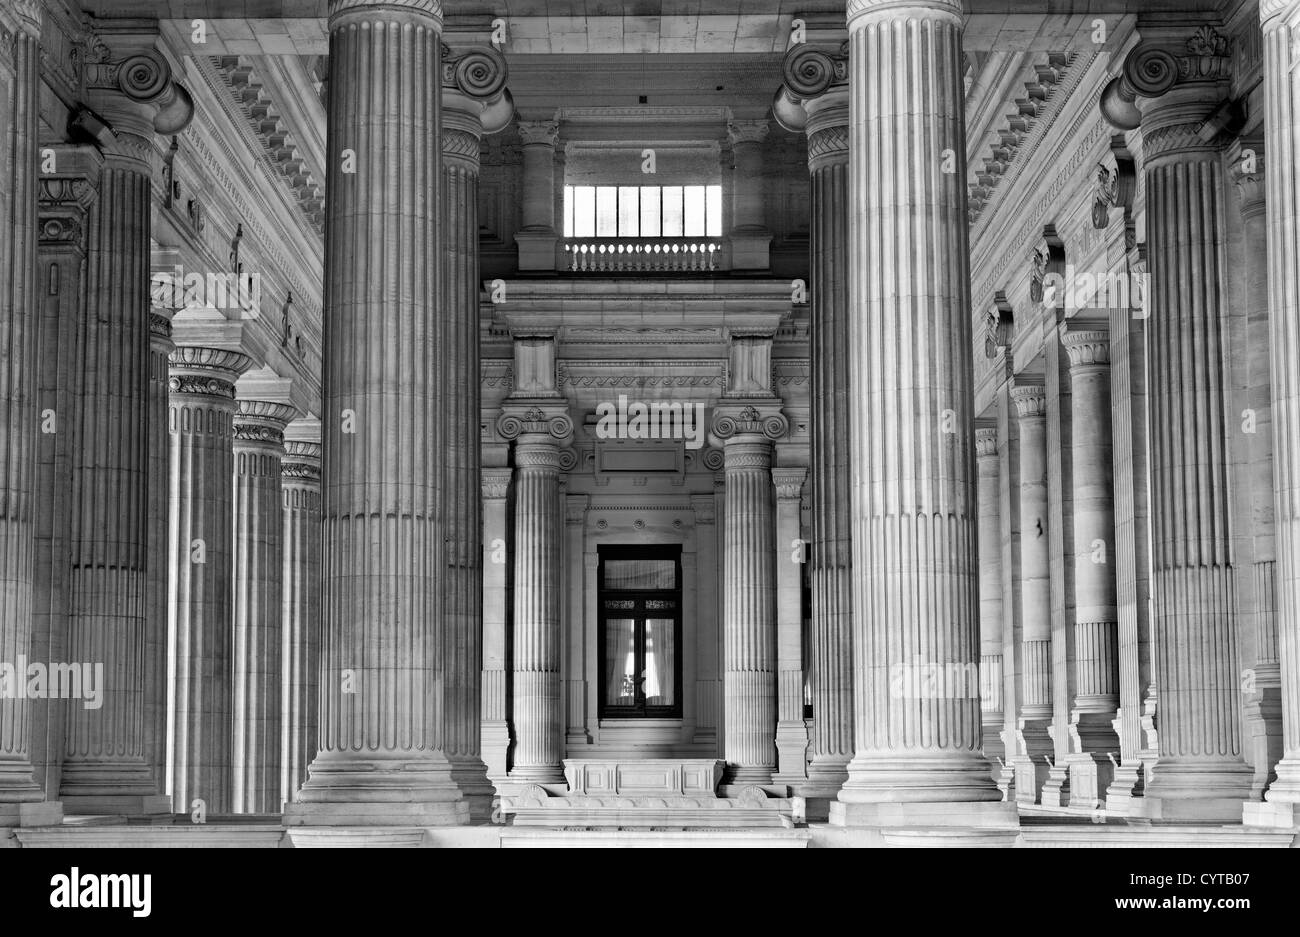 BRUSSELS - JUNE 22: Neoclasical vestiubule of Justice palace on June 22, 2012 in Brussels. - Stock Image